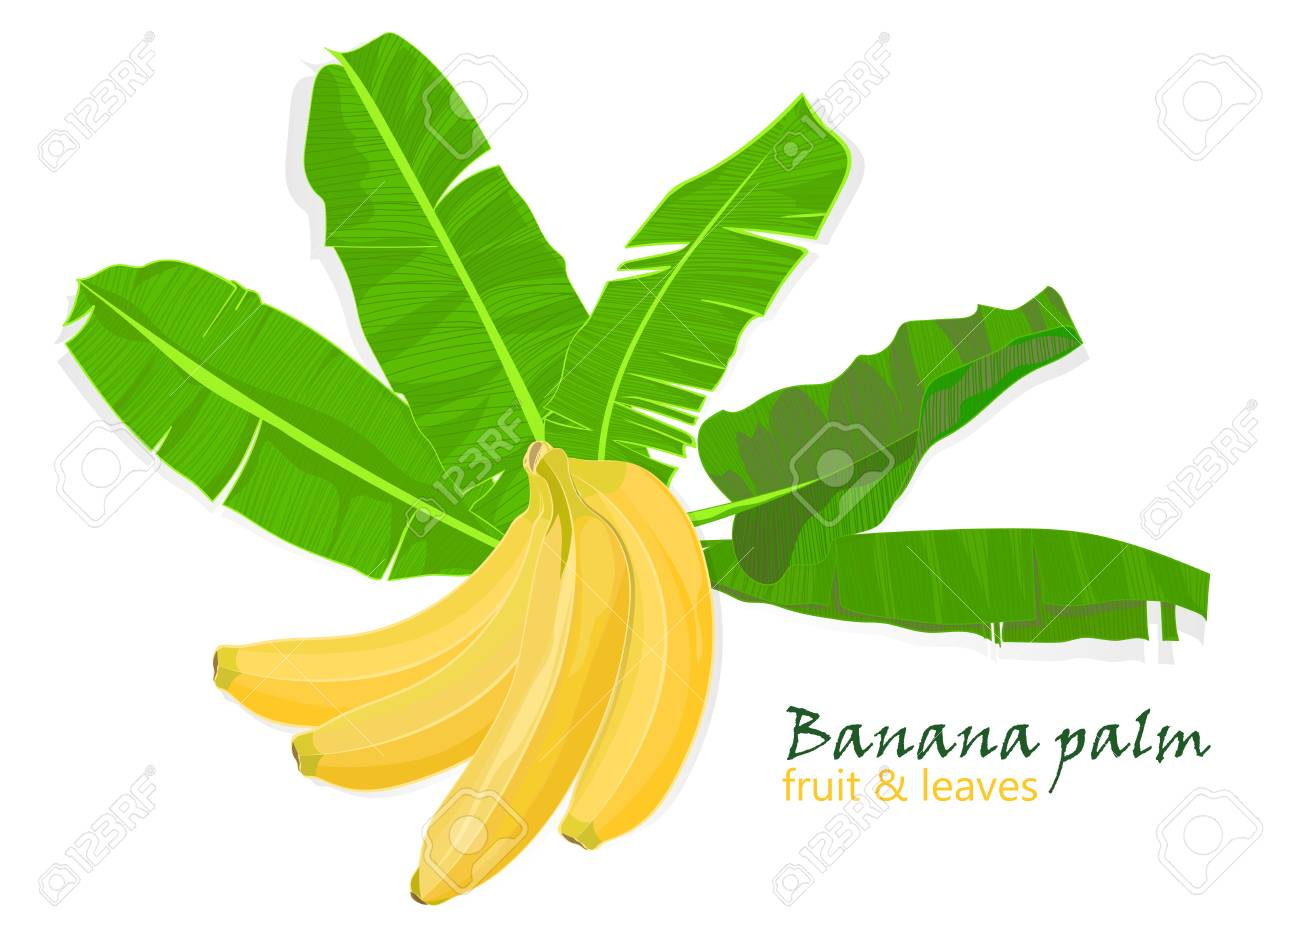 Branch Tropical Palm Banana Leaves And Fruits Realistic Drawing In Flat Color Style Isolated